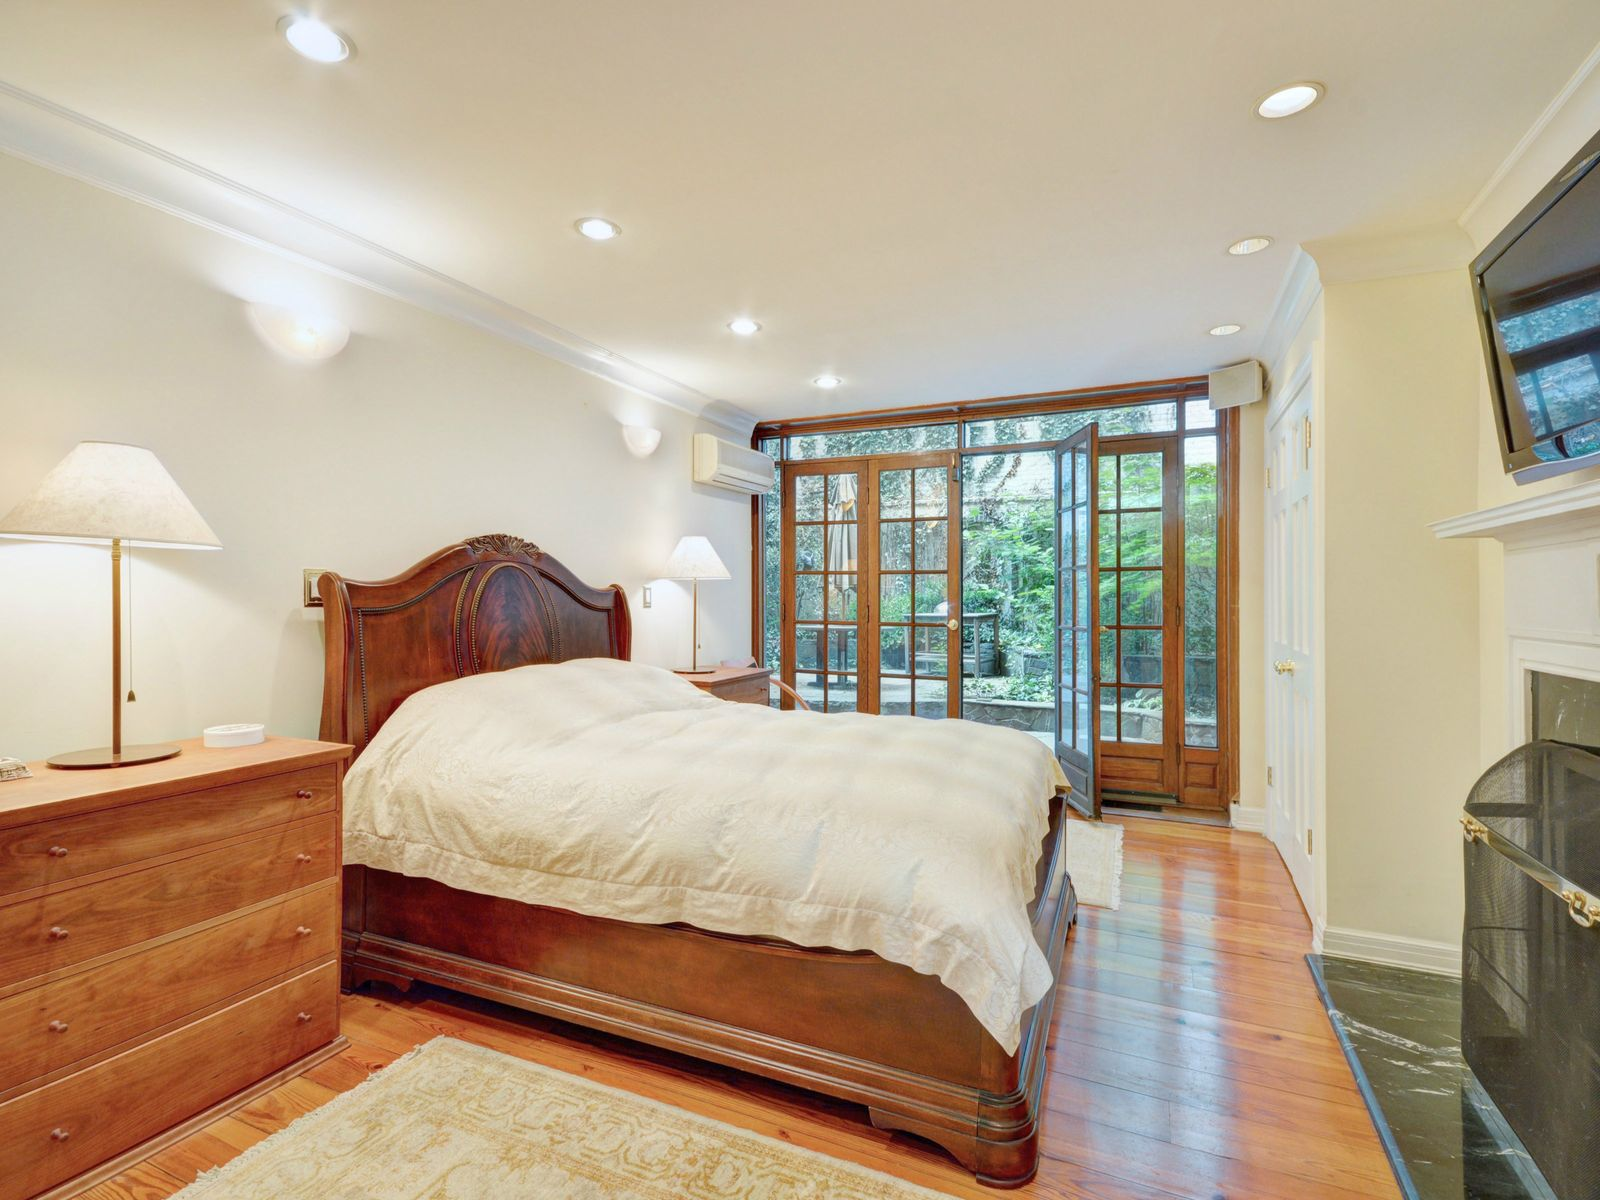 2 Gramercy Park West: Tranquility